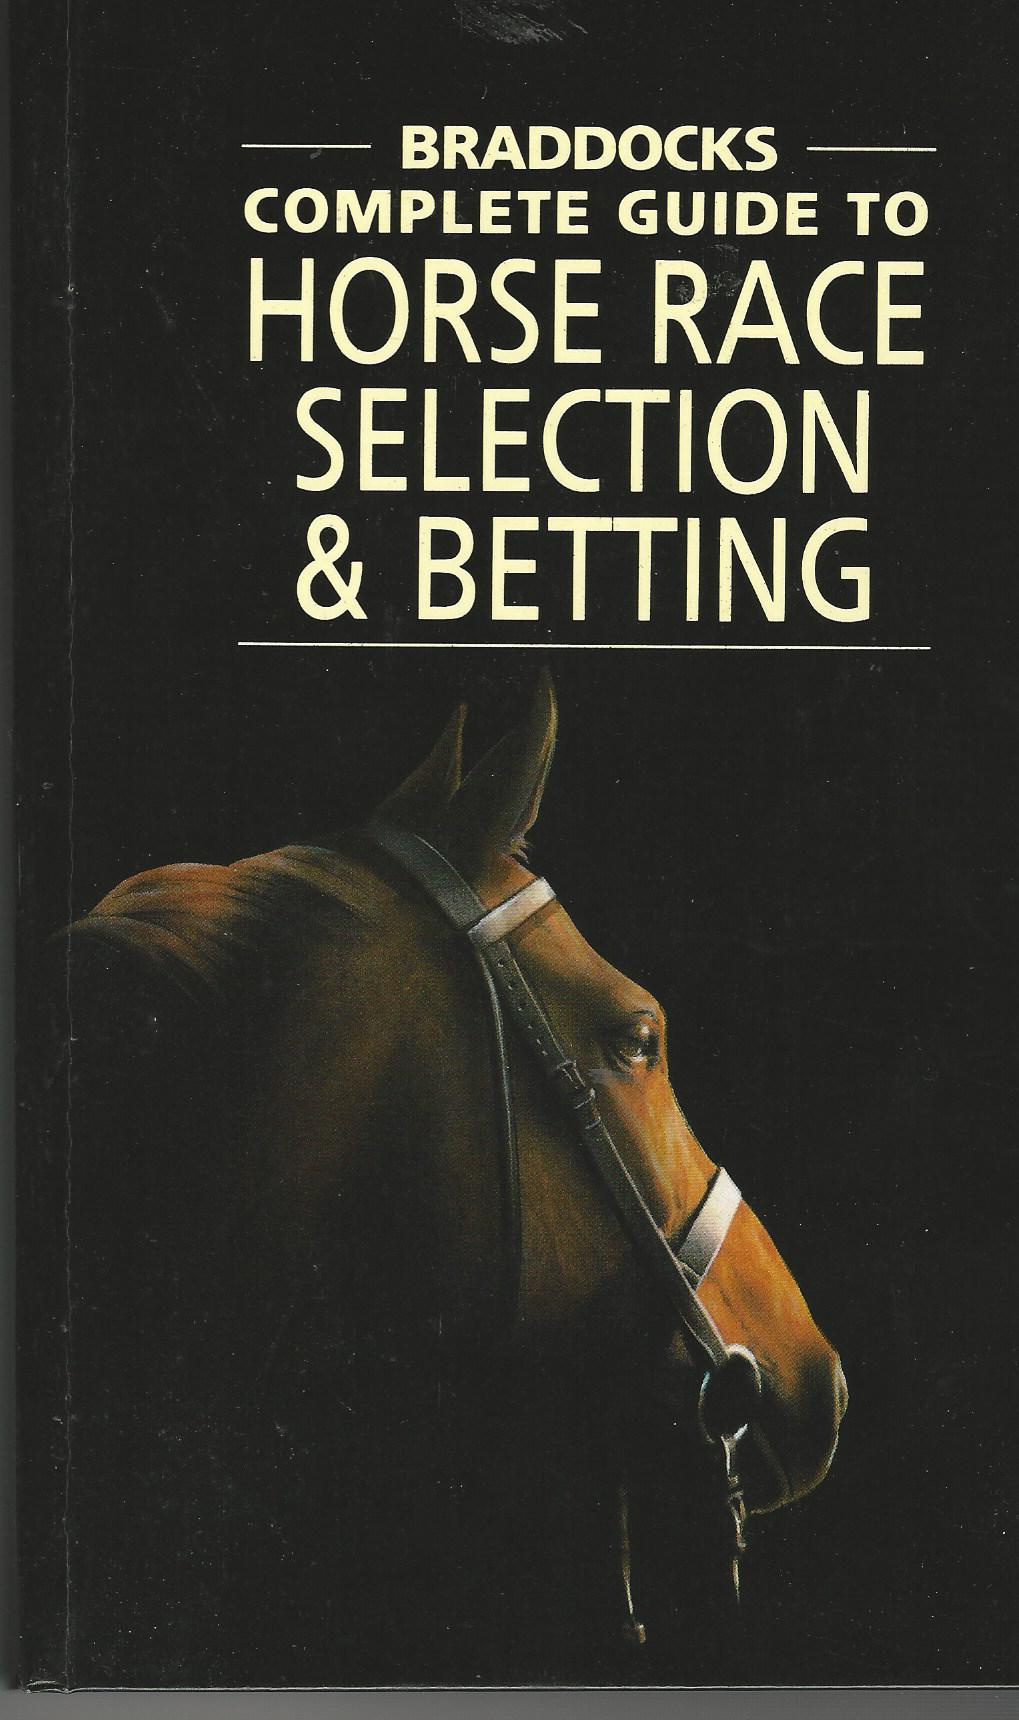 Image for Braddock's Complete Guide to Horse Race Selection and Betting: With Statistical Information by Racing Post.